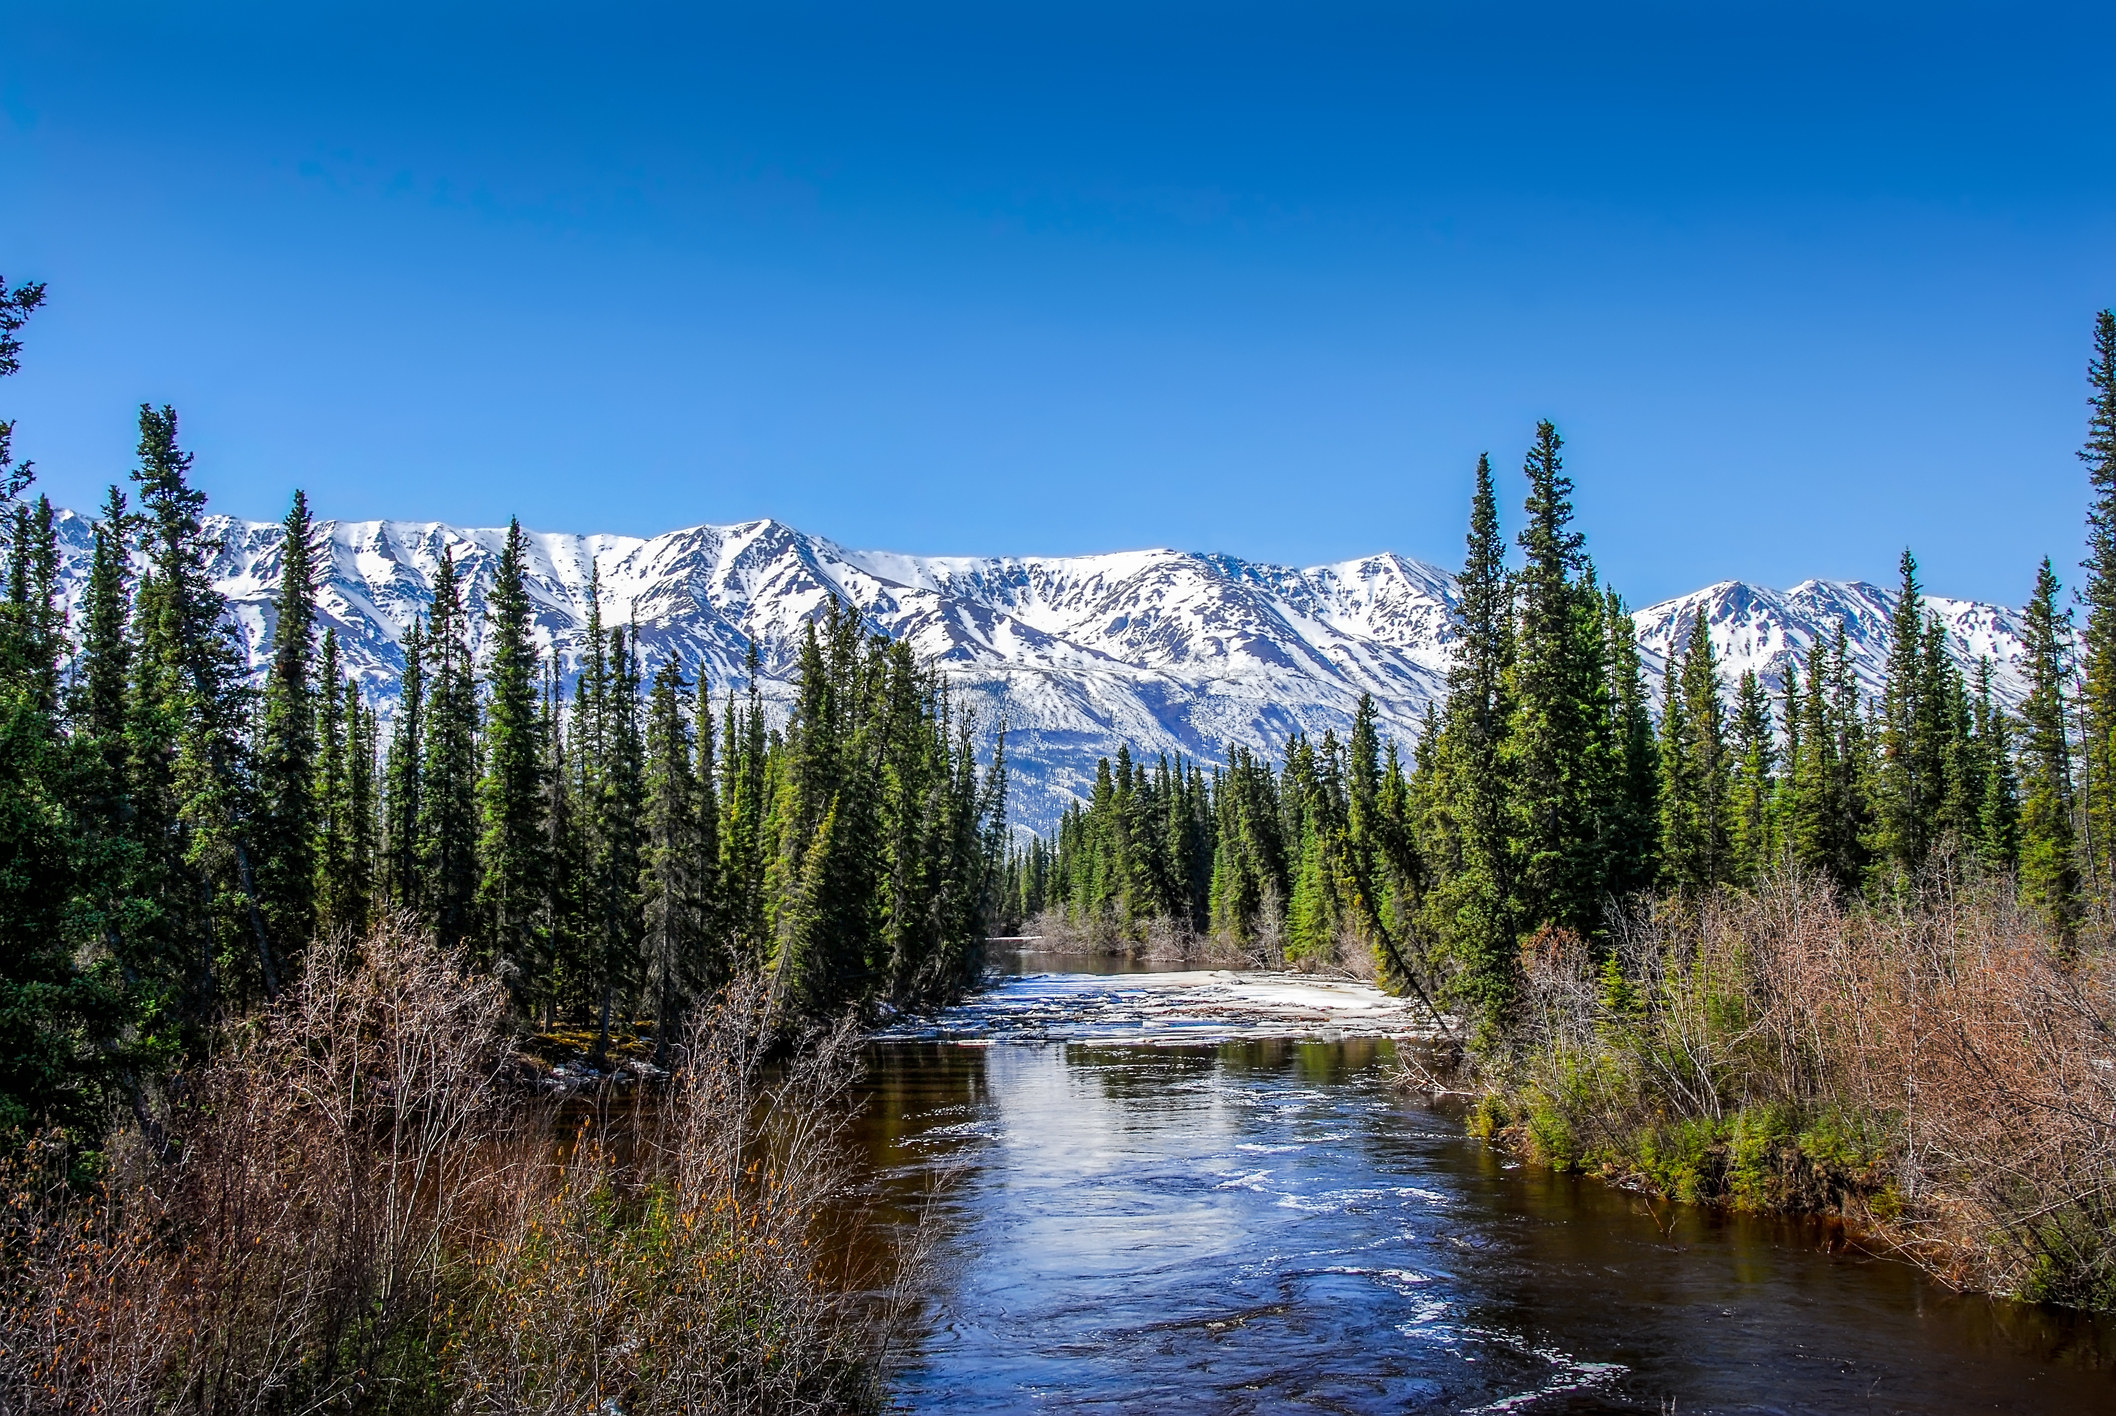 Tall pine trees surround a river with snow-capped mountains in the distance